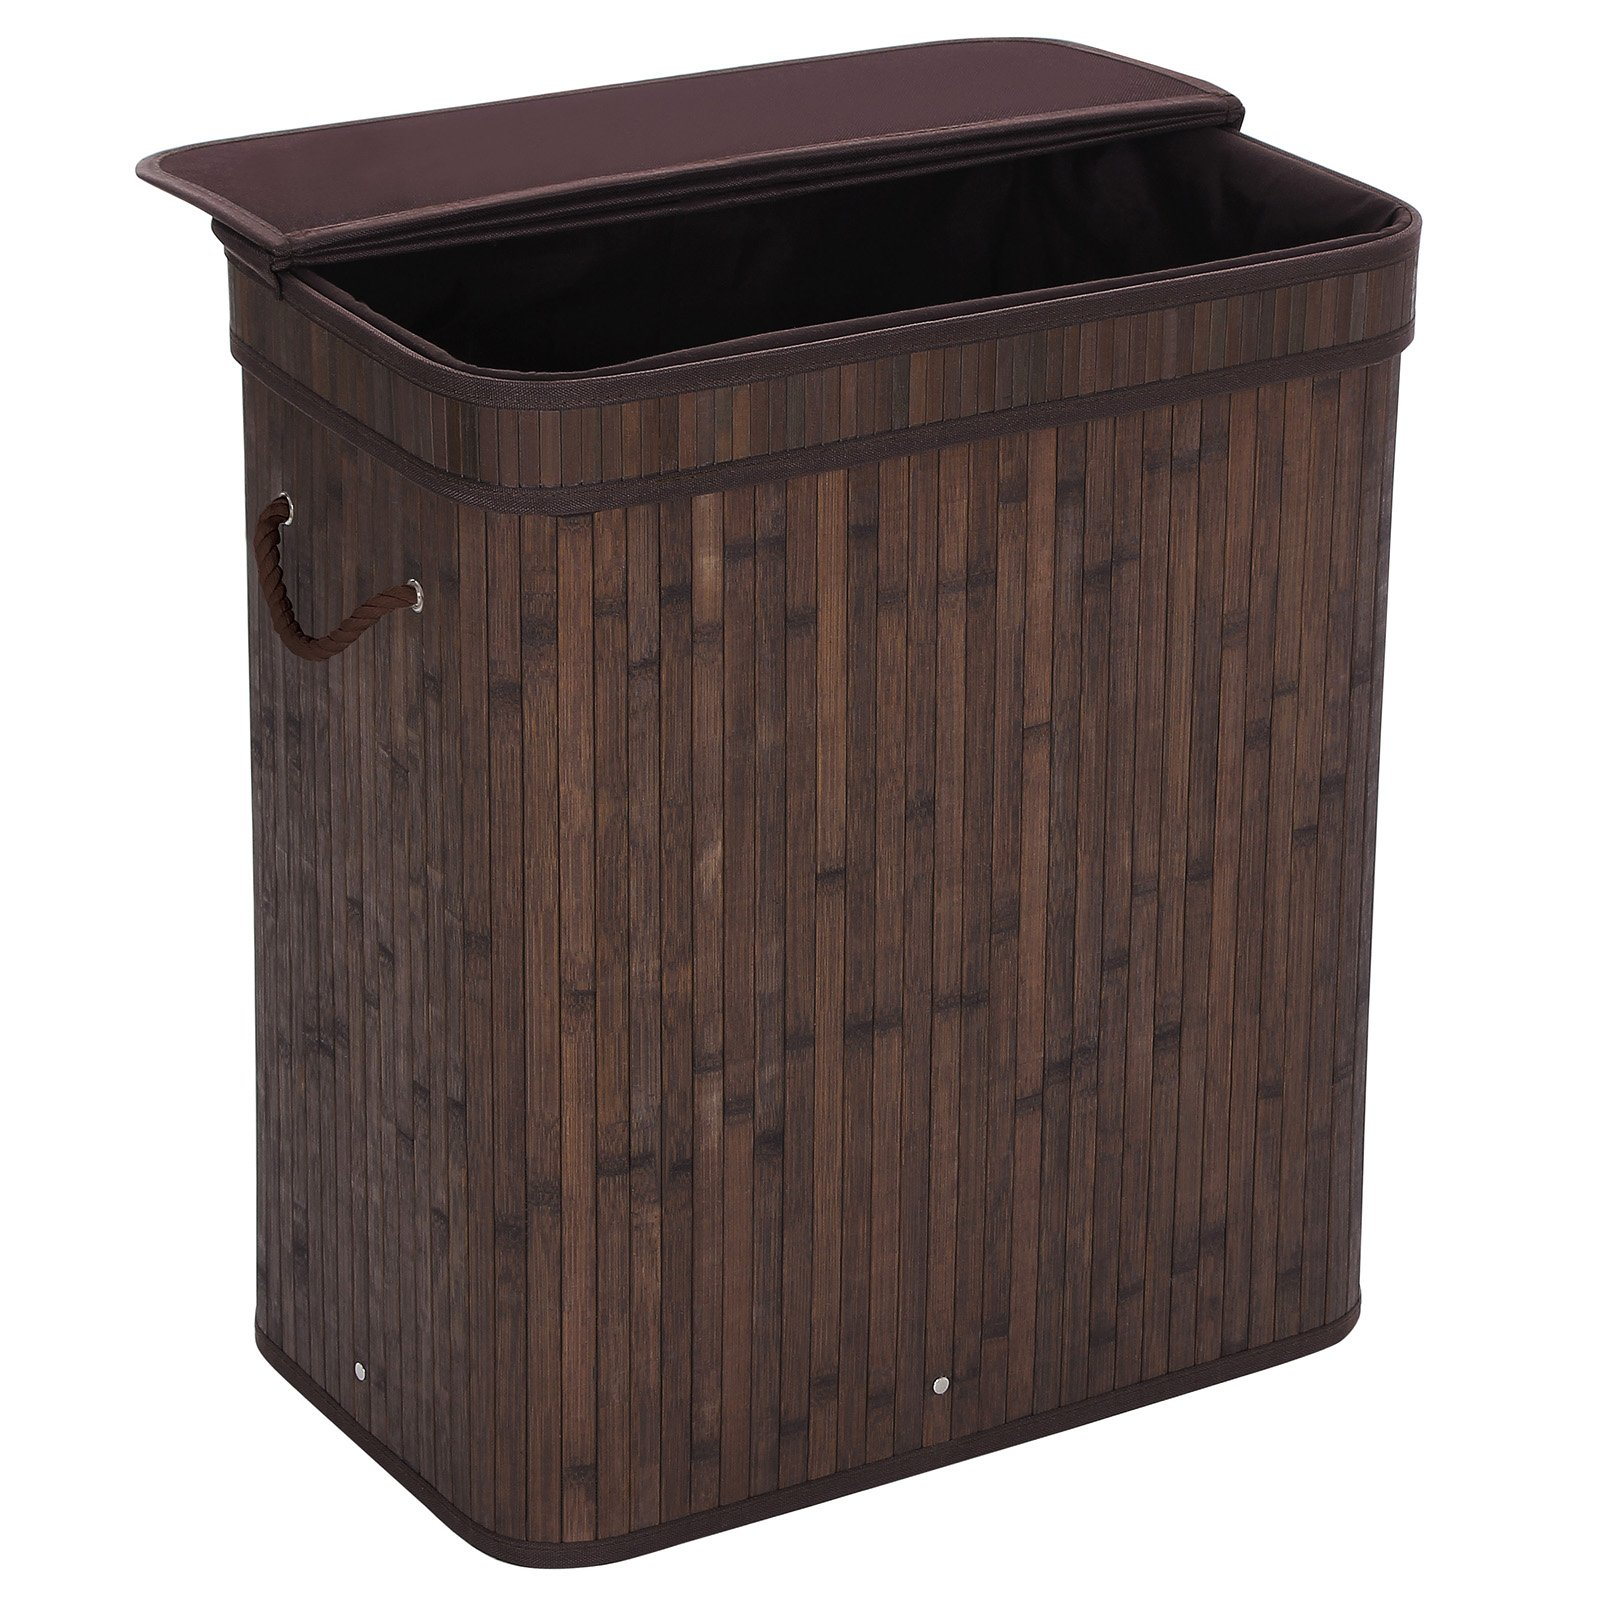 SONGMICS Bamboo Laundry Hamper Dirty Clothes Storage Basket with Lid Liner and Handles Rectangular Dark Brown ULCB63B